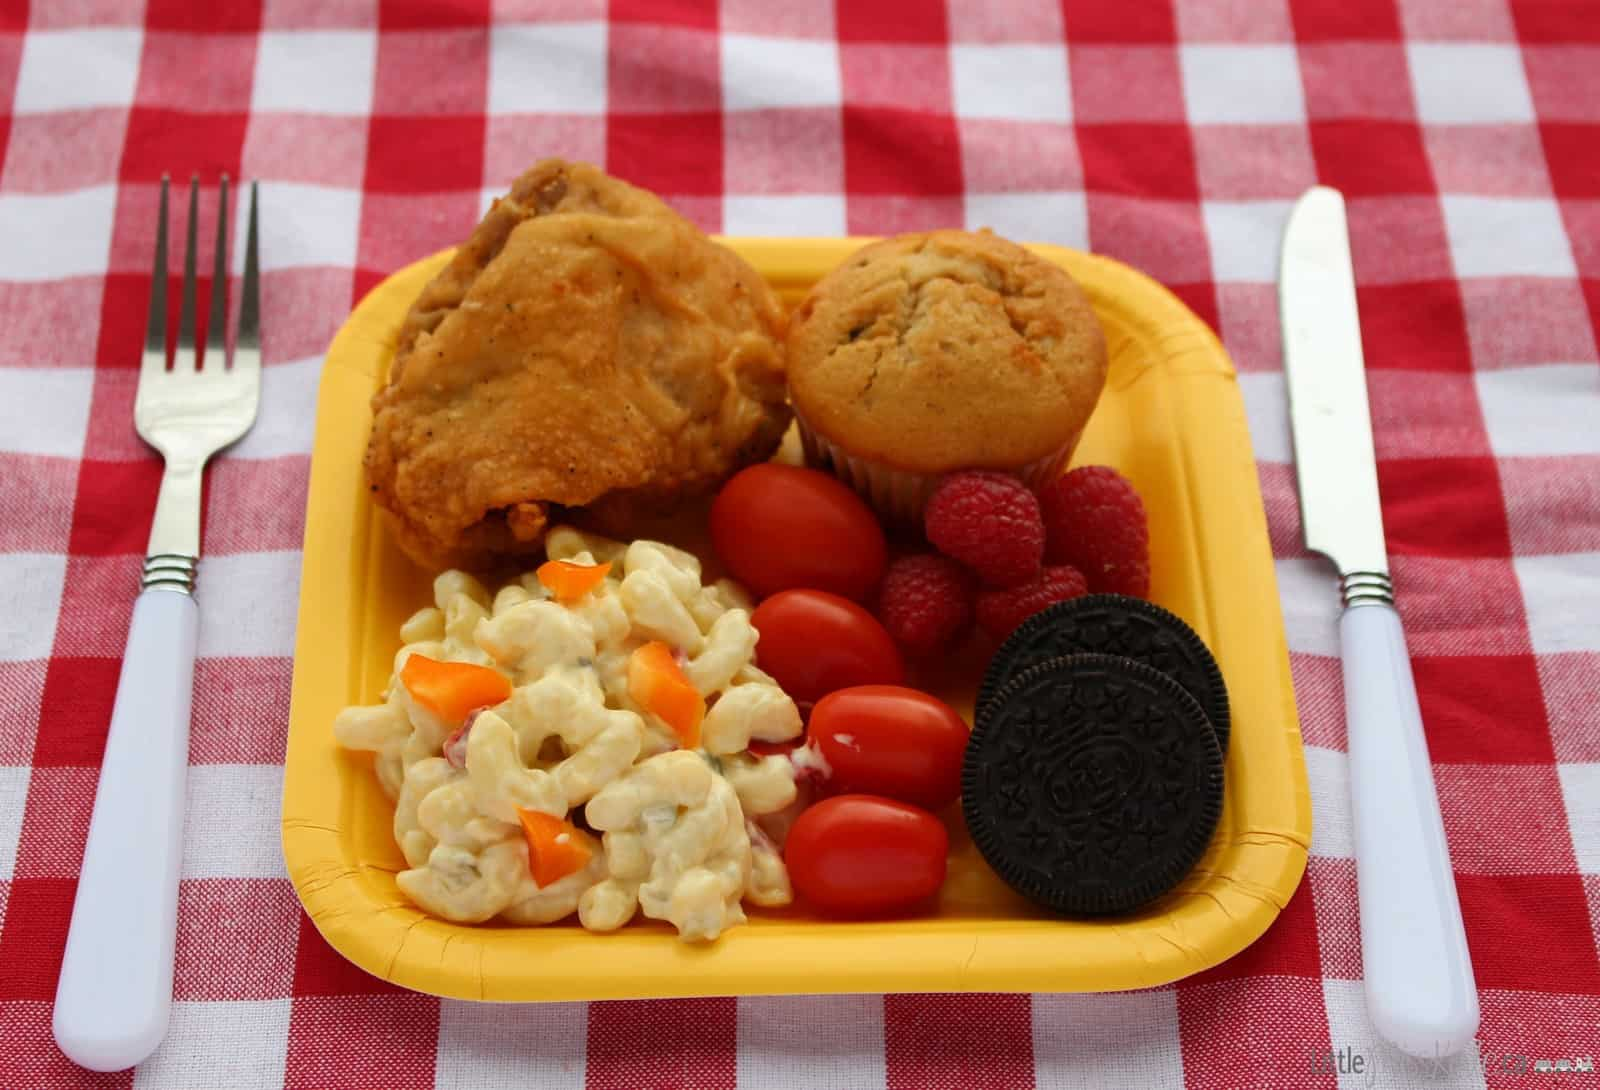 Easy Store-bought 5 Minute Picnic Meal Ideas via littlemisskate.ca